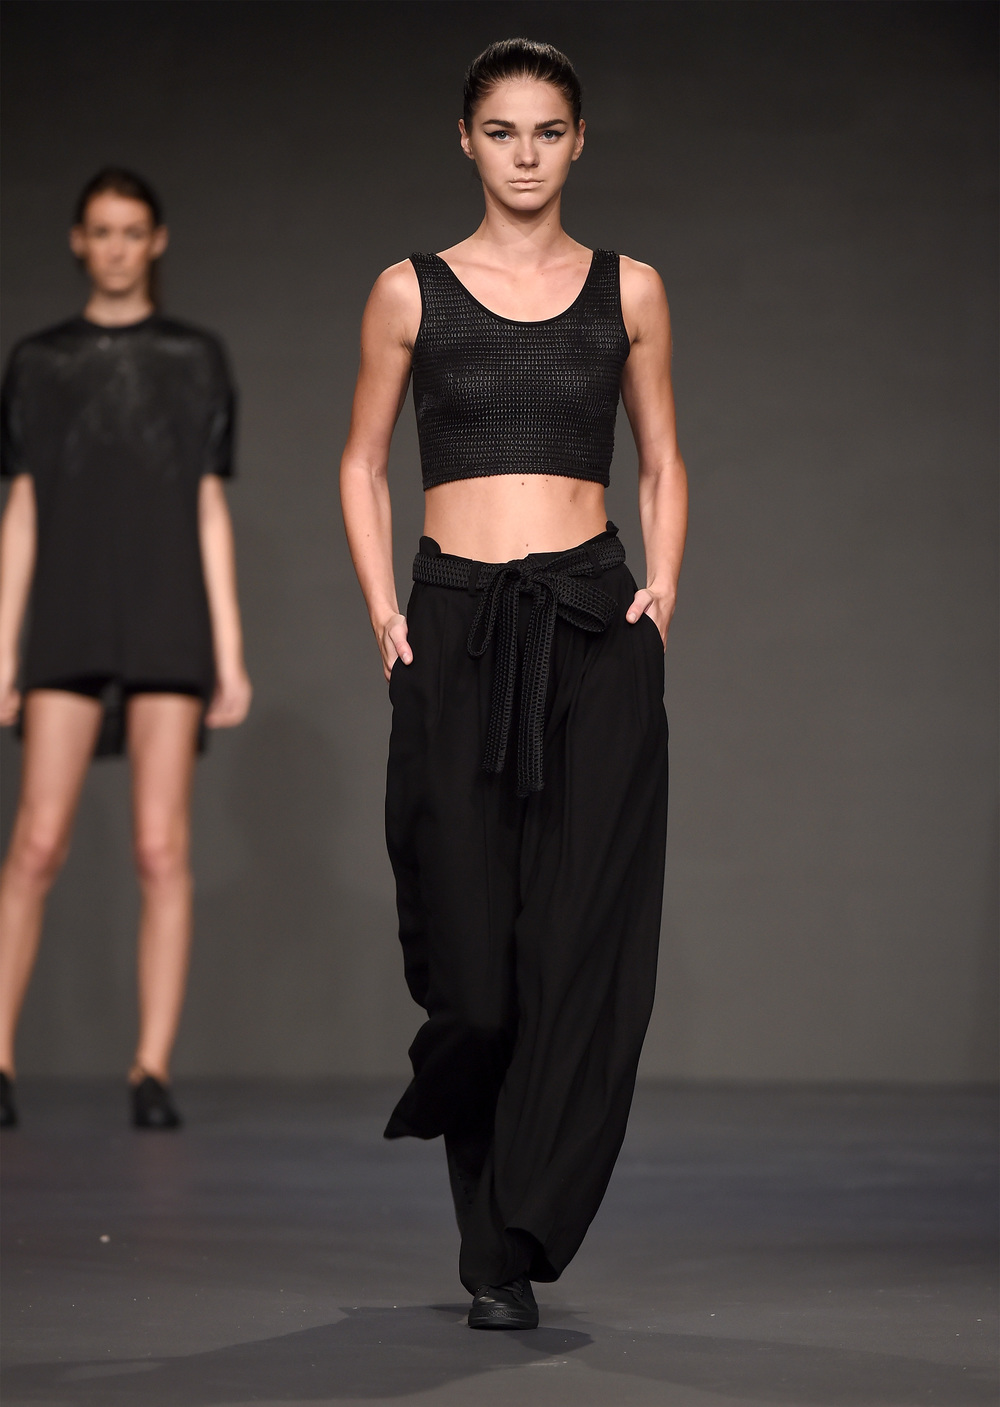 FFWD_Starch Foundation Show_003.JPG